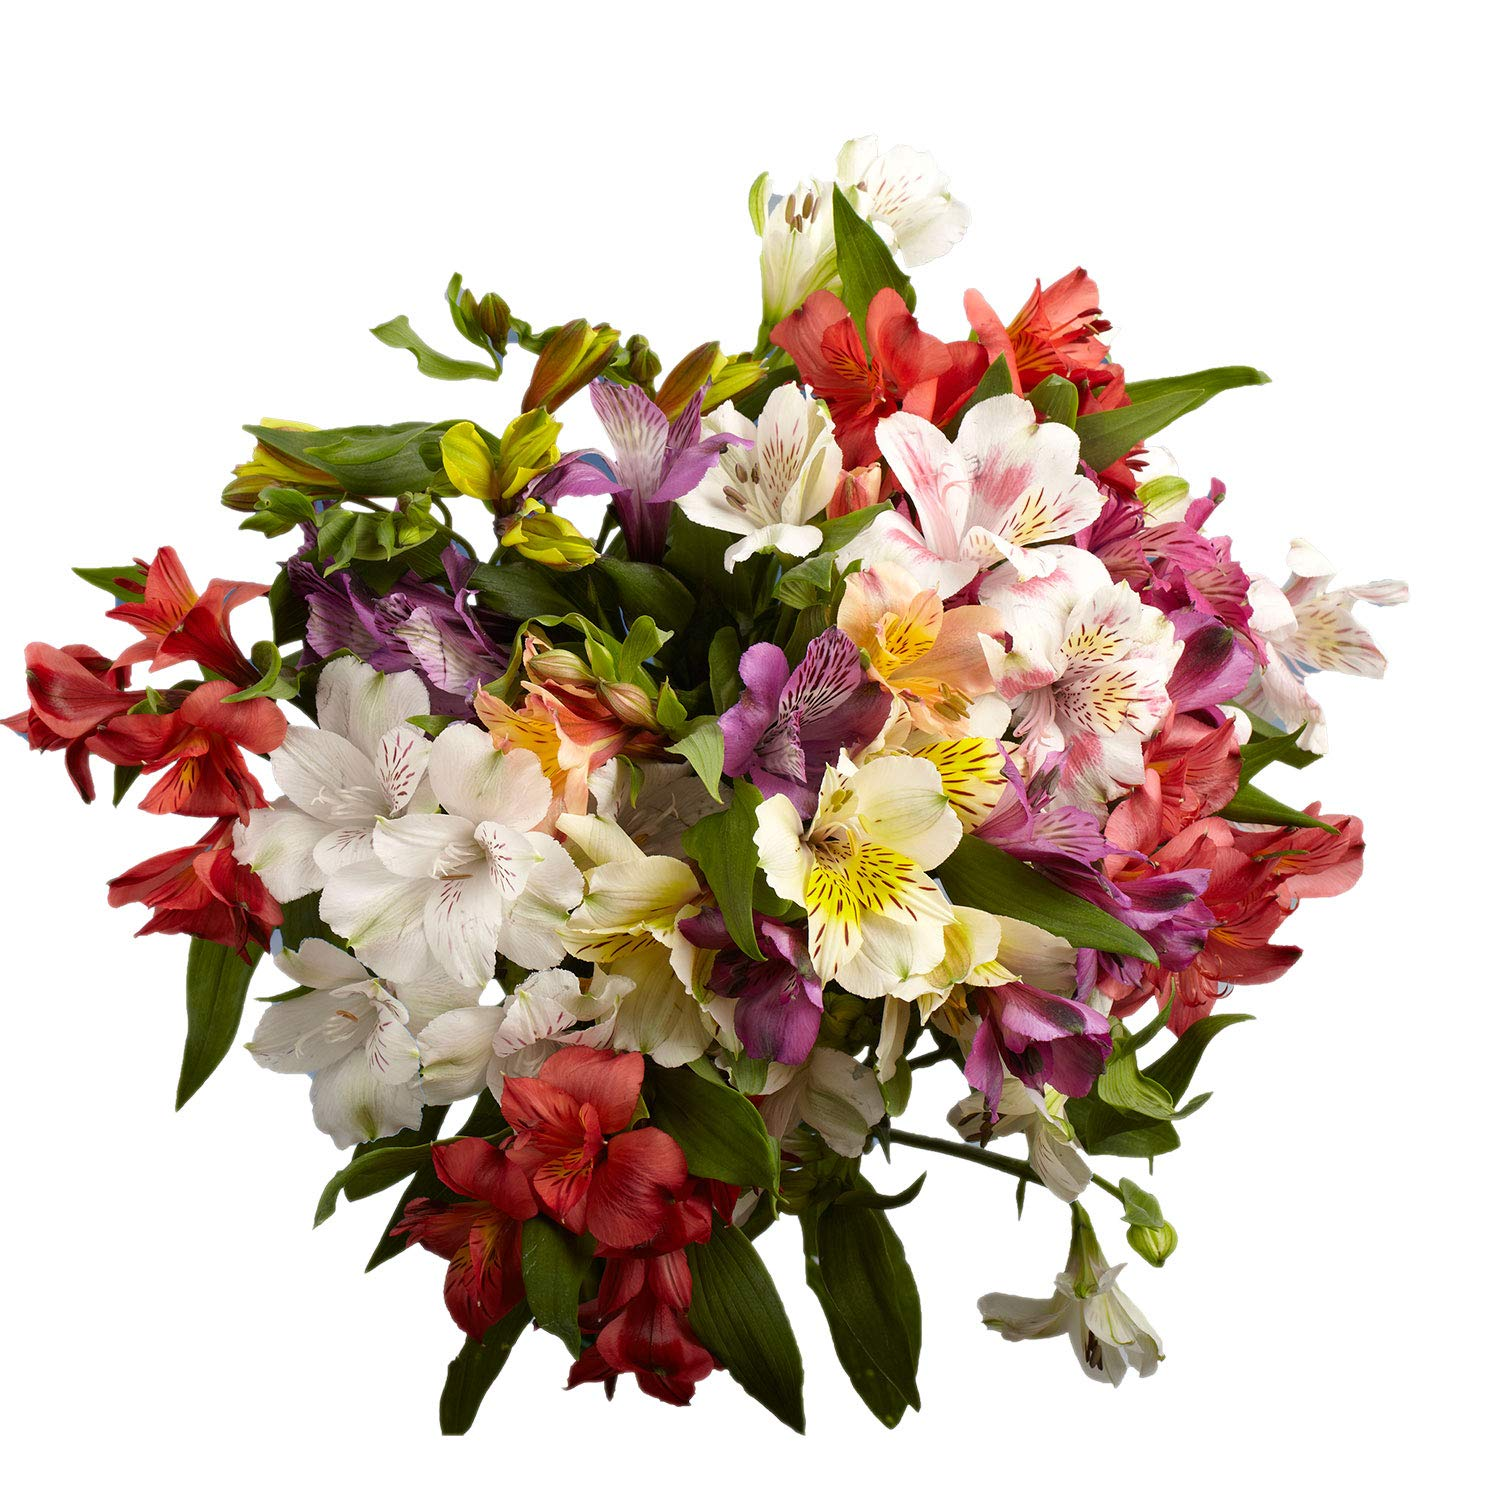 Amazon Com Globalrose Assorted Color Alstroemerias Flowers 120 Bright Blooms 30 Stems Of Fresh Peruvian Lilies Grocery Gourmet Food